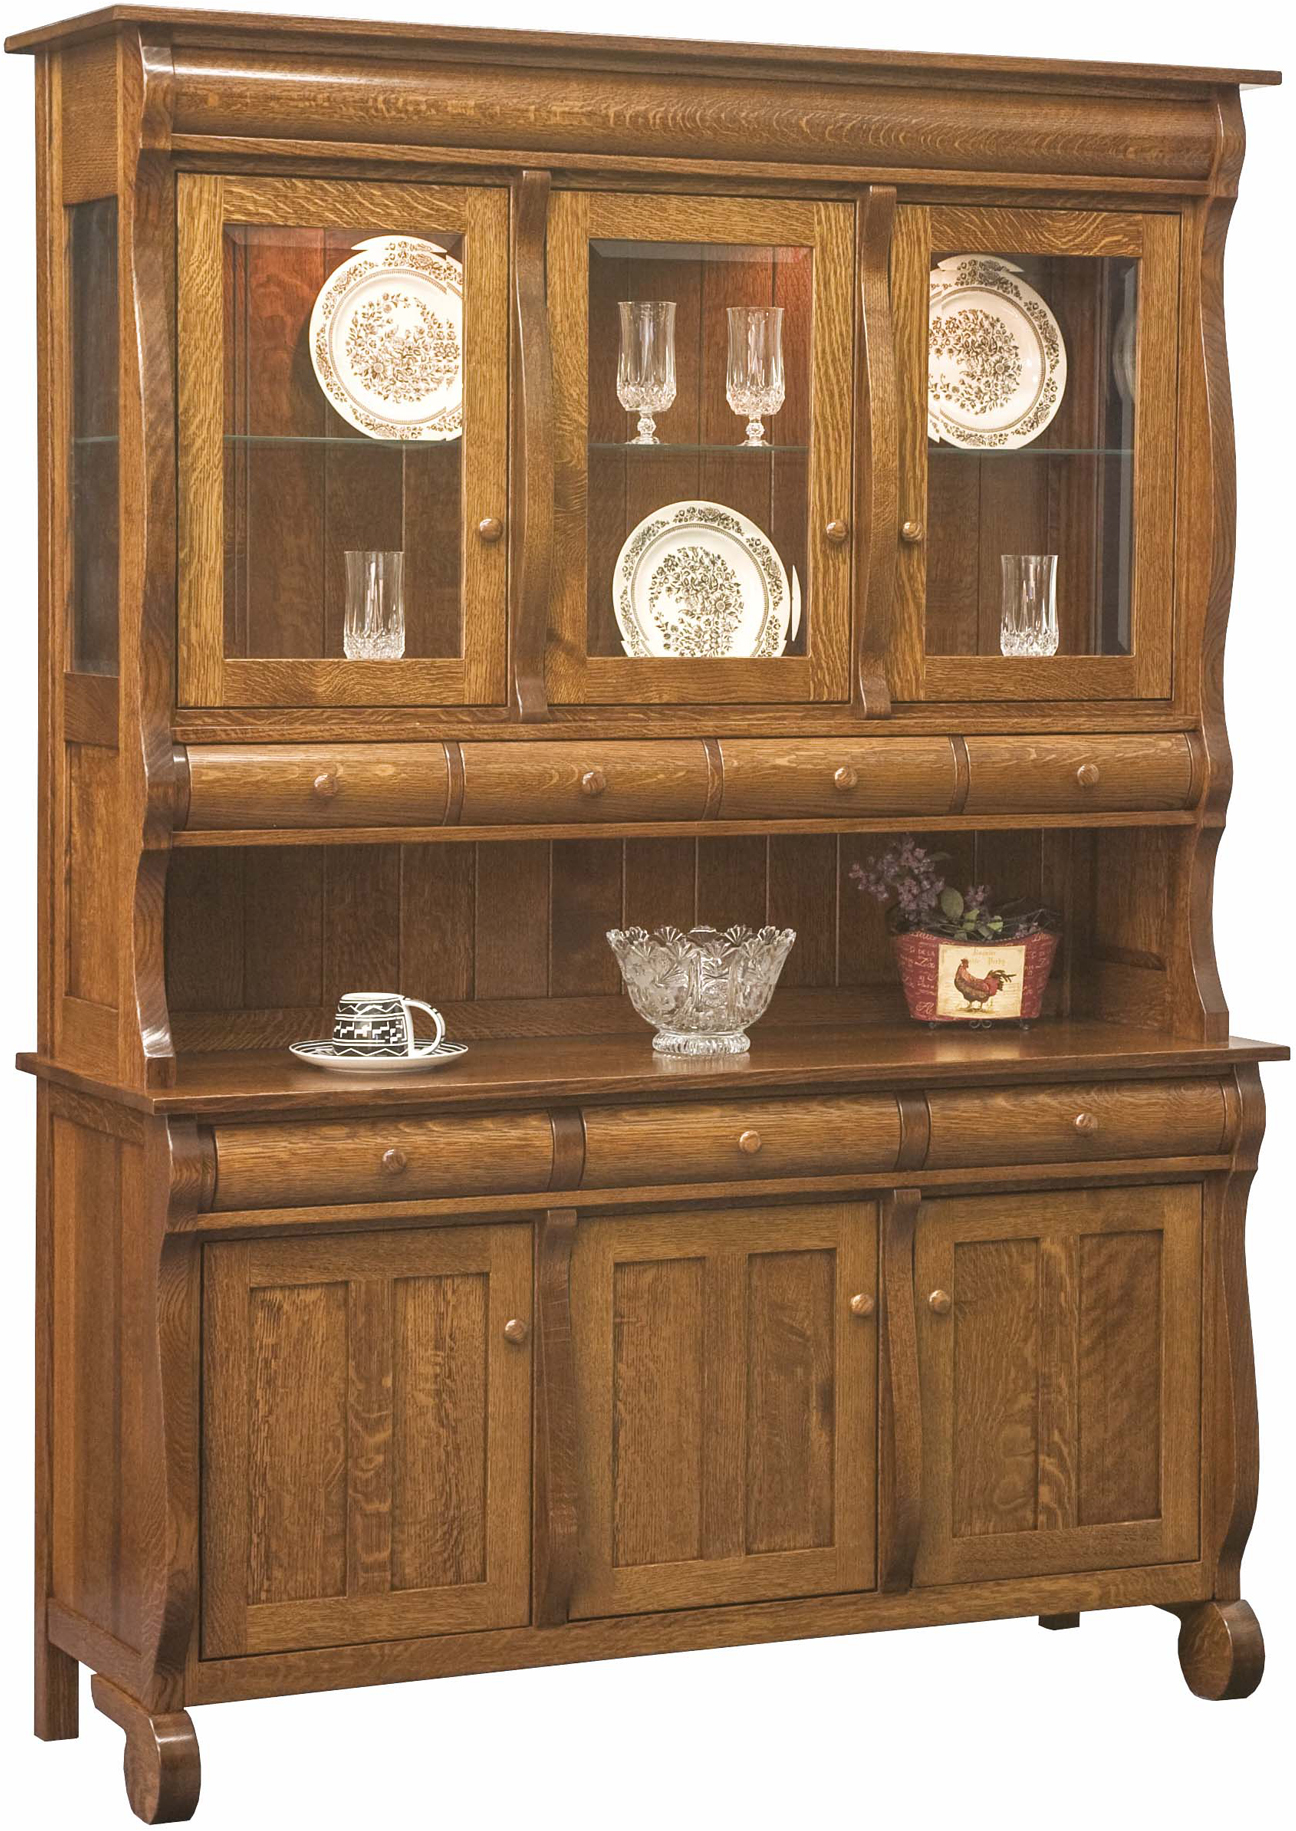 Hampton 3-Door Hutch